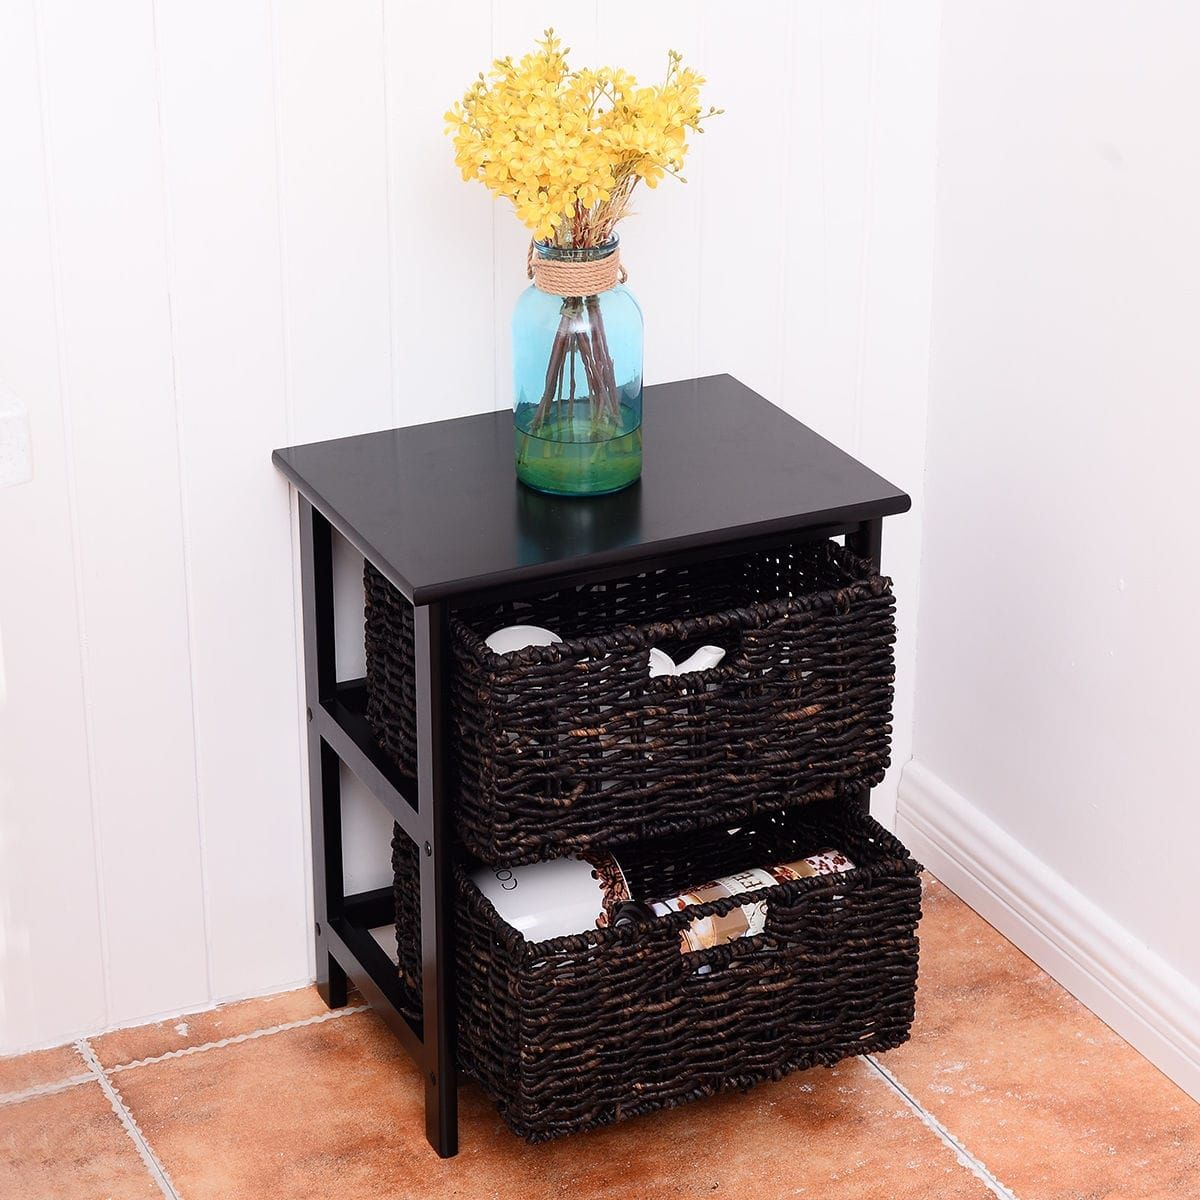 way wood end accent table home furniture living room night stand with baskets storage lamps usb coffee and chairs copy led bedside lamp beach cottage decor tall tables drawers